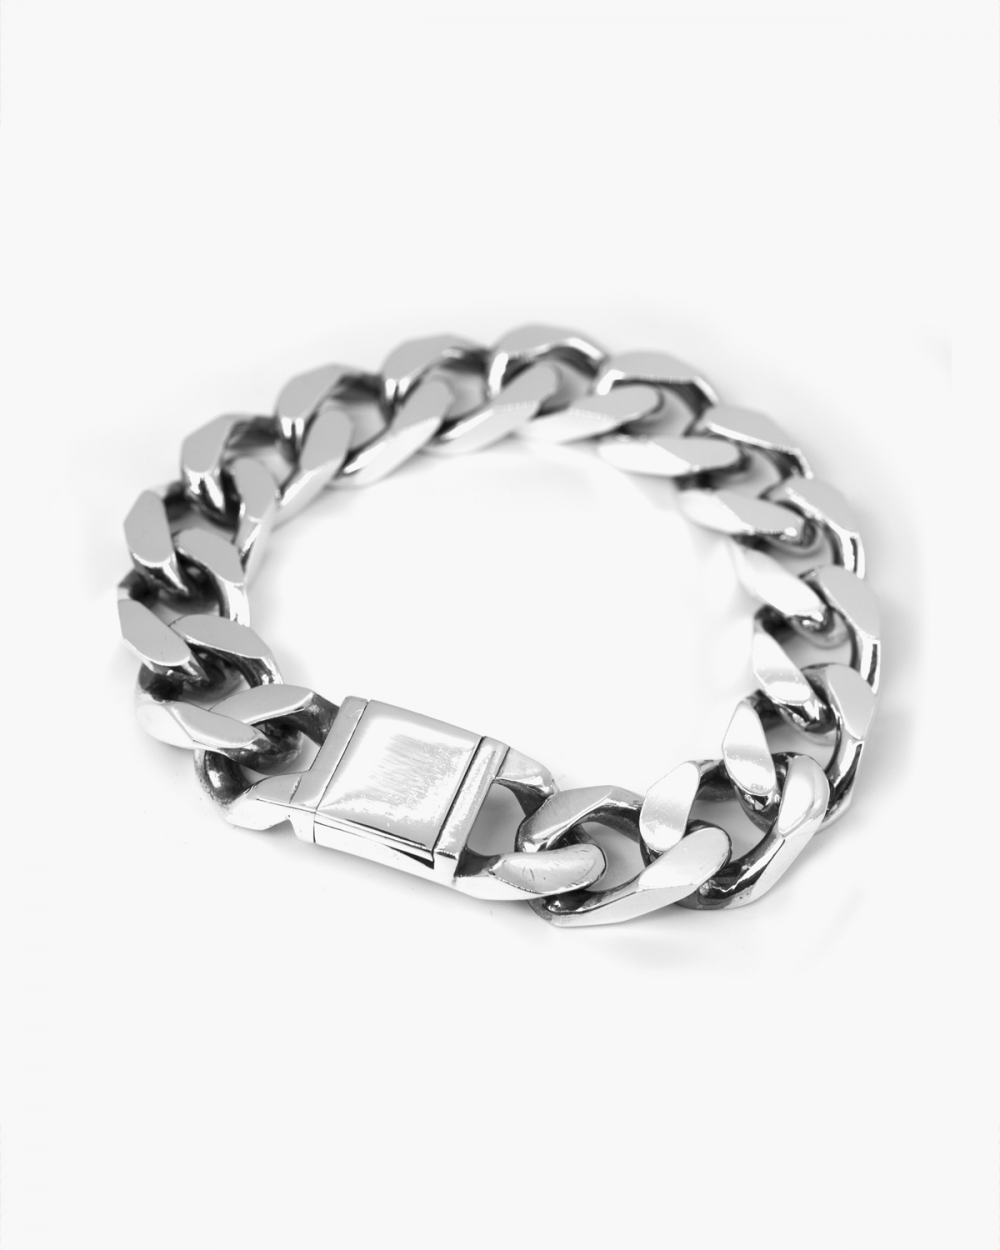 Bracelets SQUARE CURB BRACELET 400 WITH OPEN BOX CLASP NOVE25